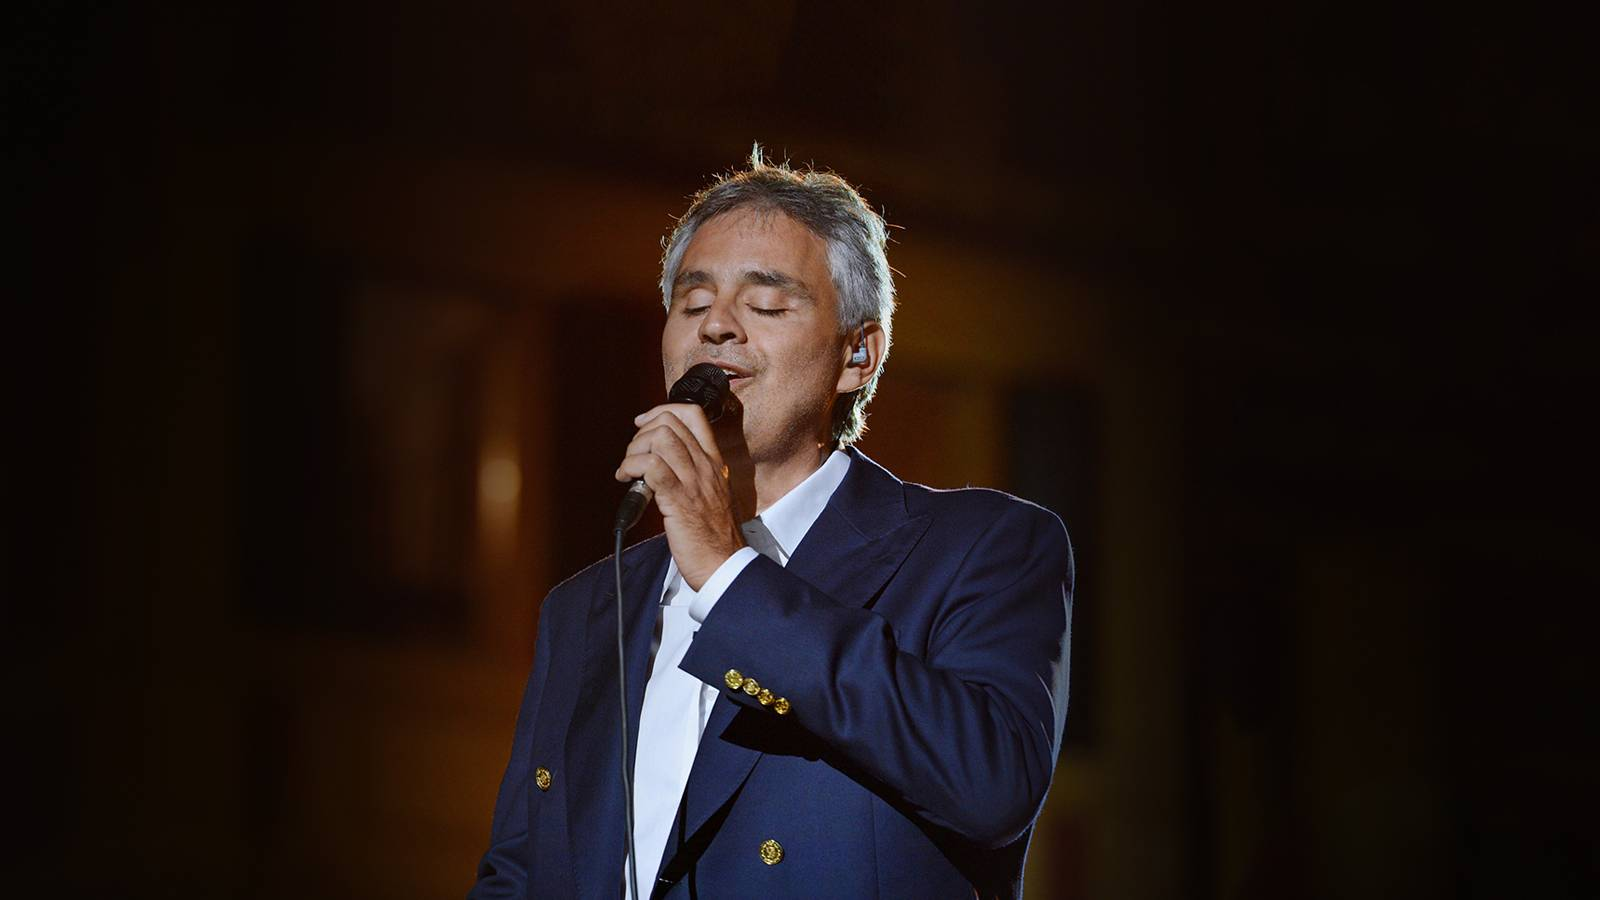 Andrea Bocelli (Rescheduled from 12/12/2020)